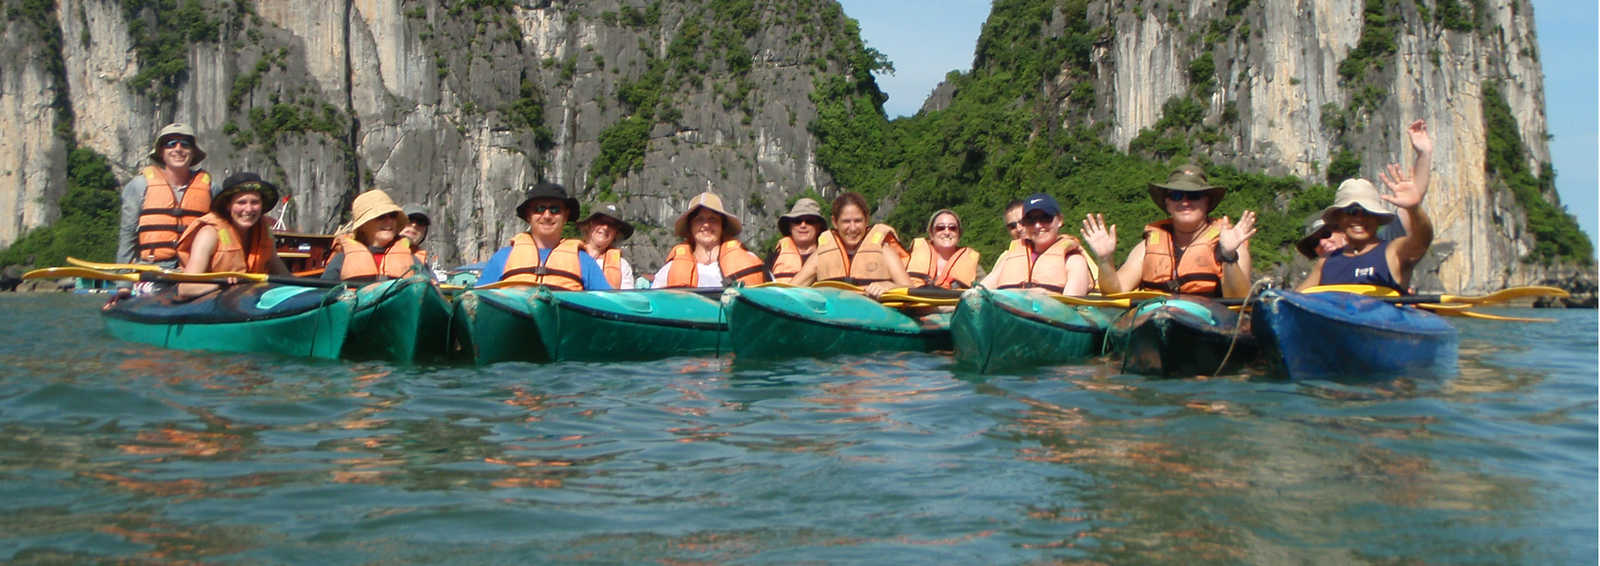 Kayaking group in Halong Bay